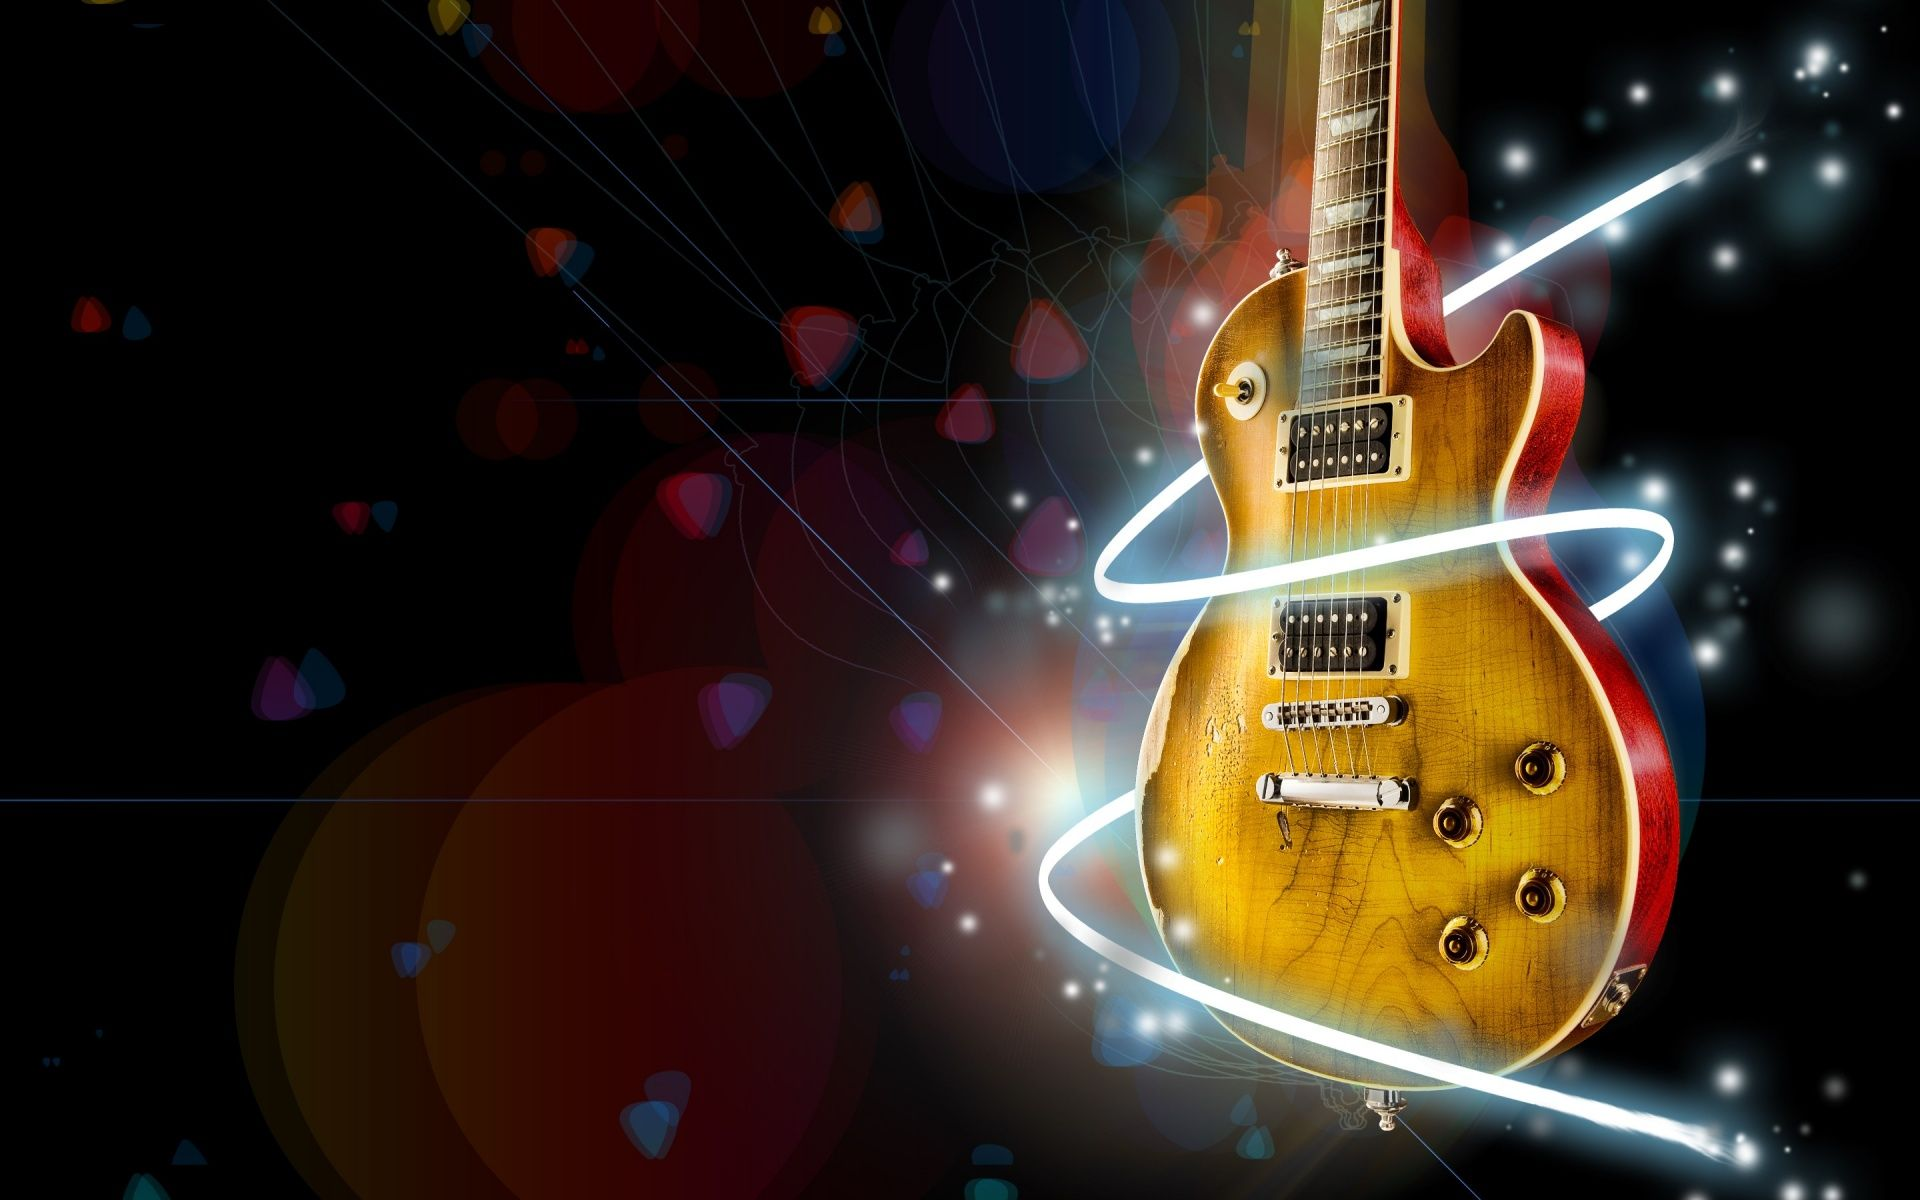 Gibson Les Paul Wallpapers Top Free Gibson Les Paul Backgrounds Wallpaperaccess